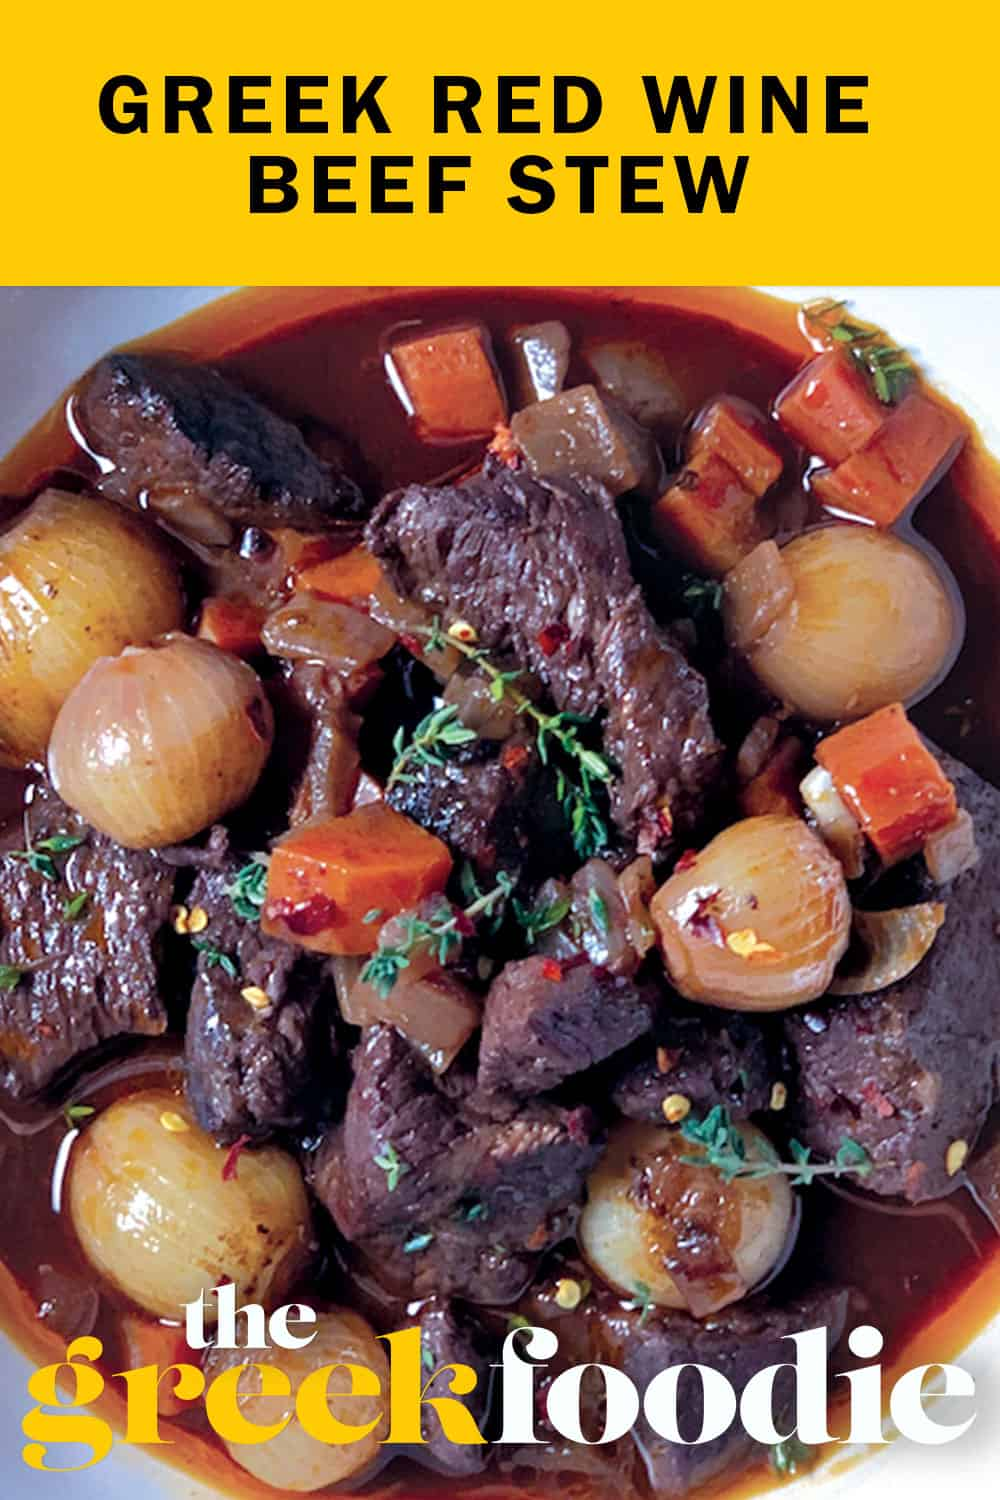 Greek Red Wine Beef Stew